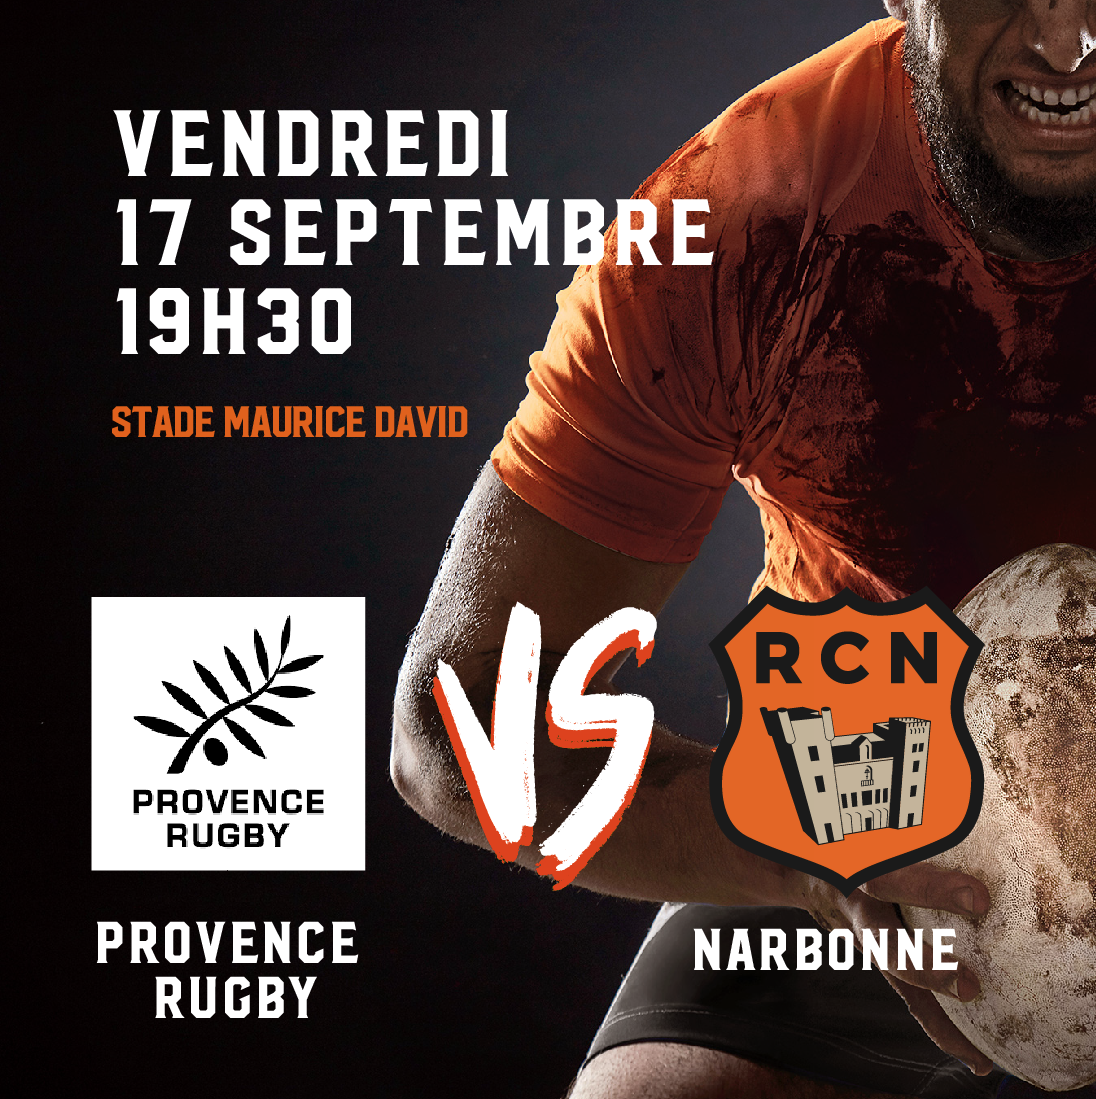 COMPOSITION PROVENCE RUGBY – RC NARBONNAIS